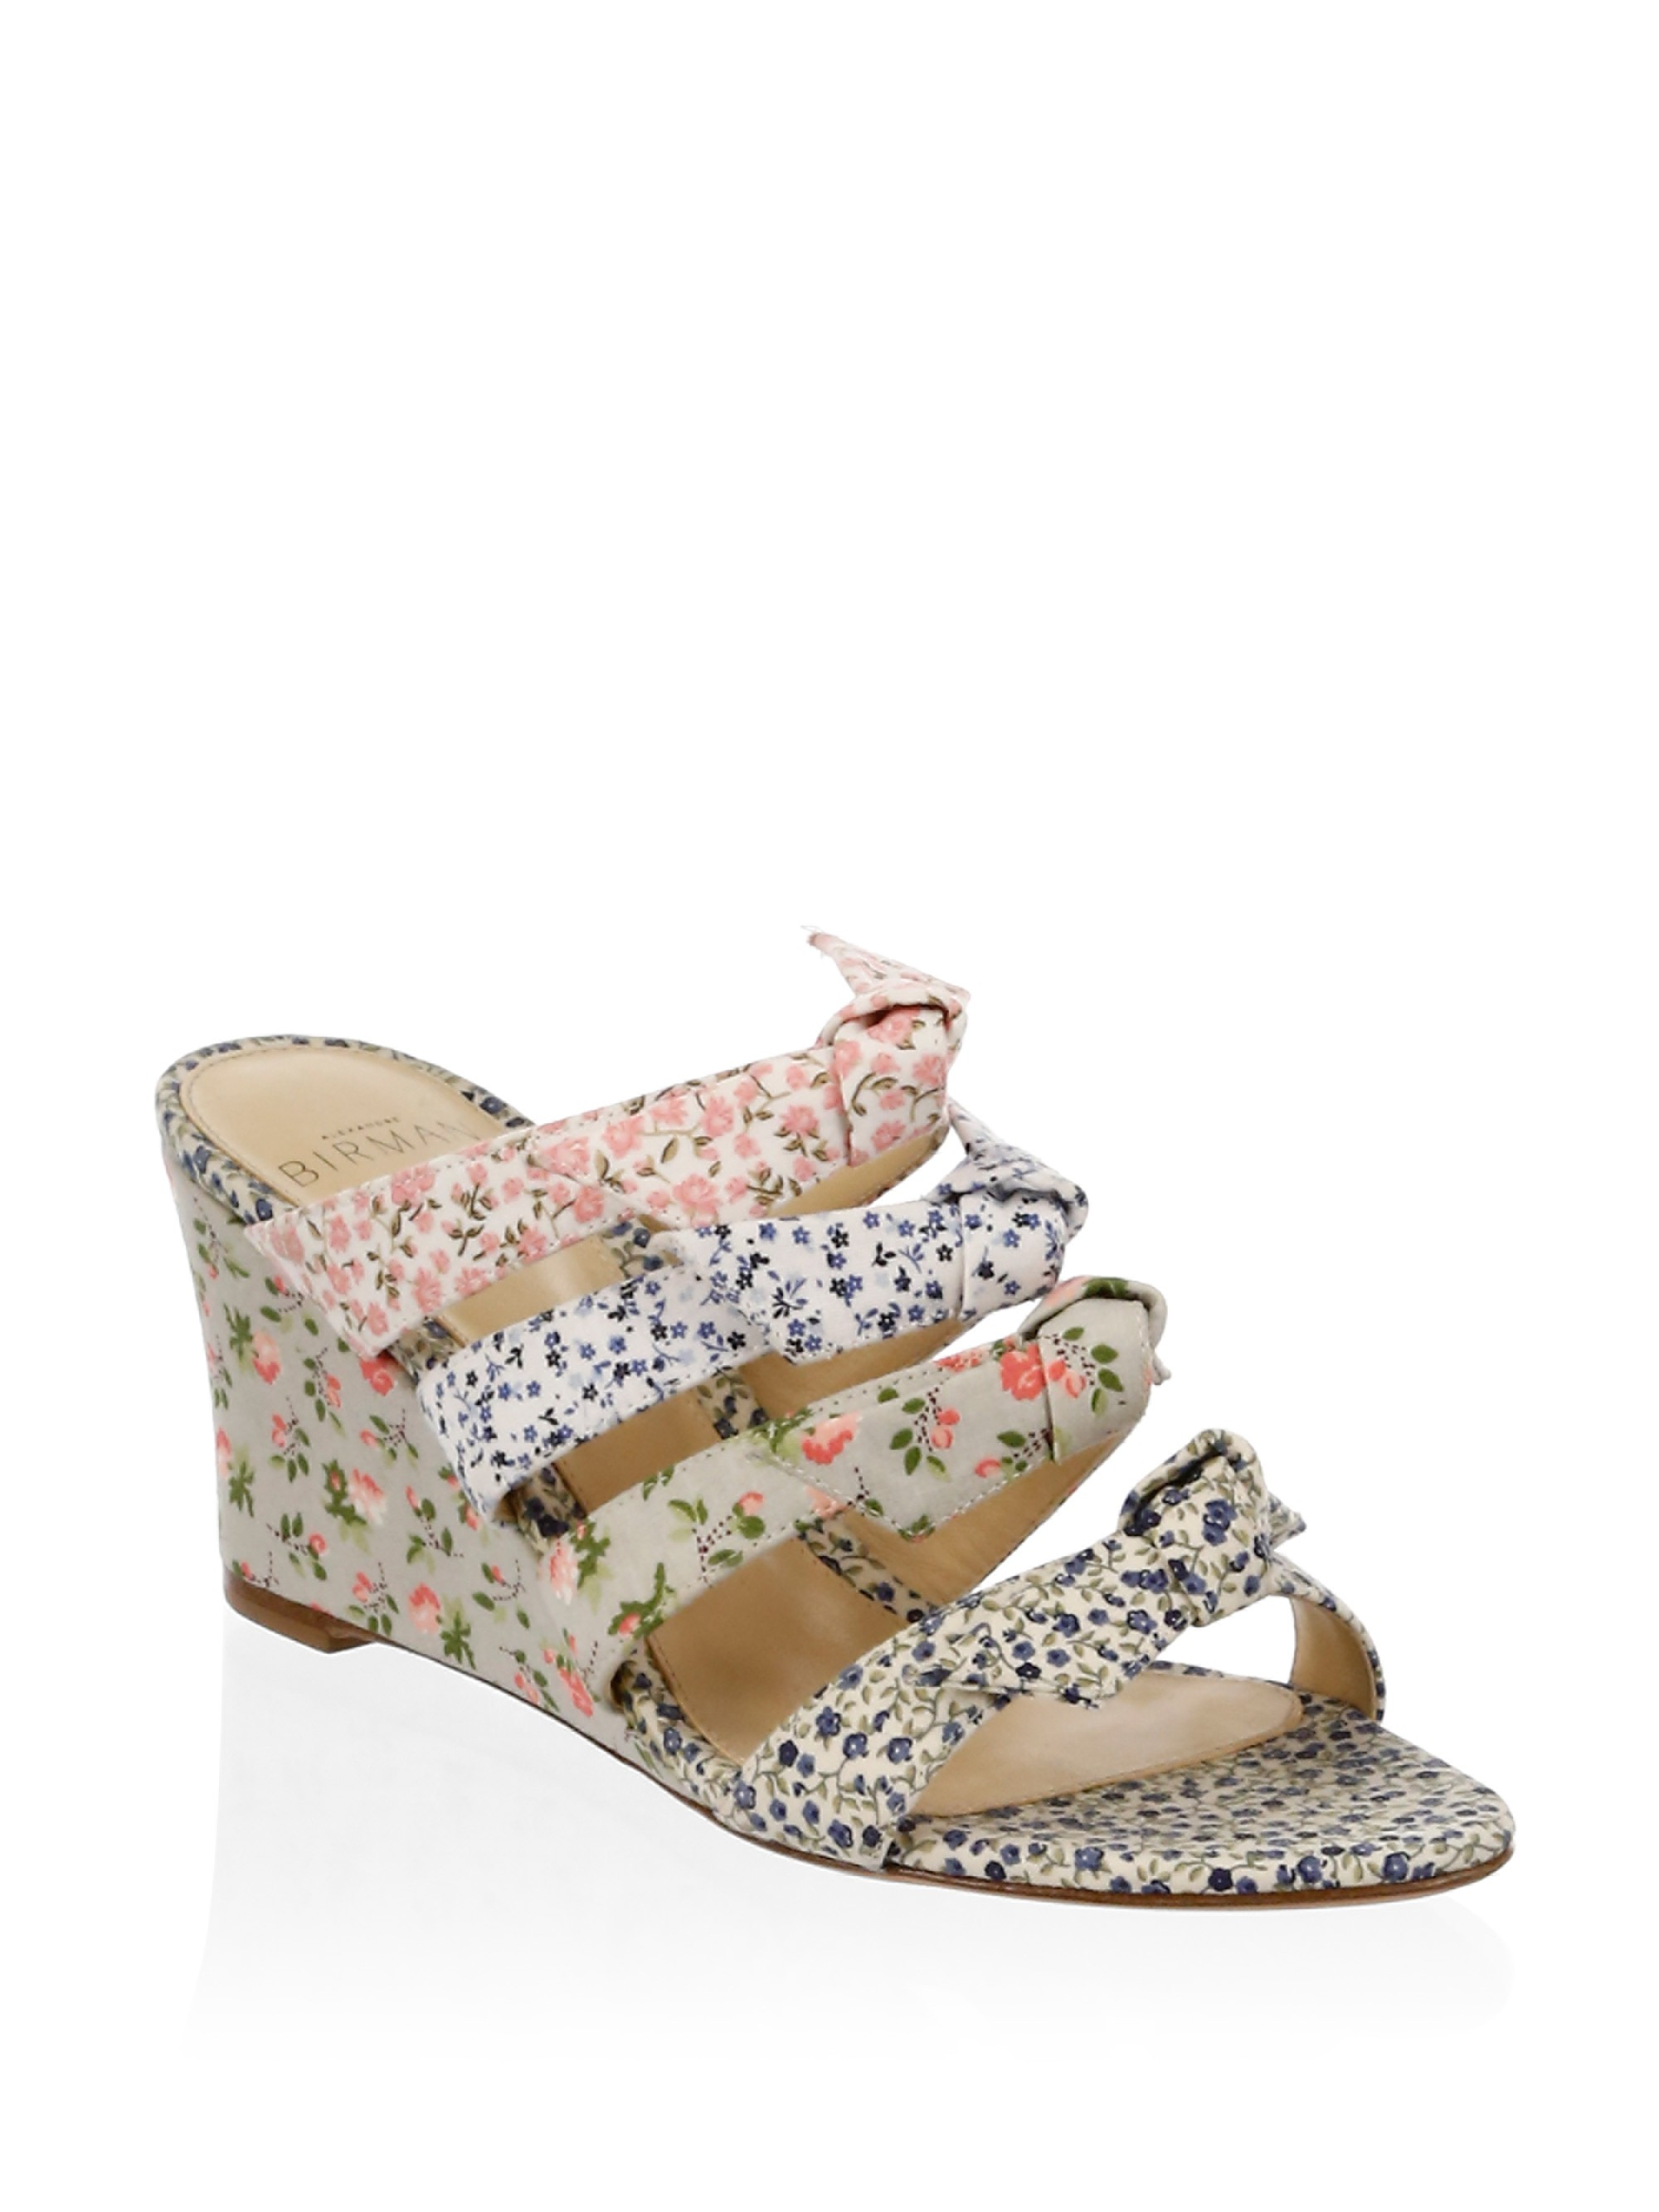 Free Shipping Great Deals ALEXANDRE BIRMAN Julyta Sandals Clearance Visit New Discount Authentic Online lOCdS8g9d